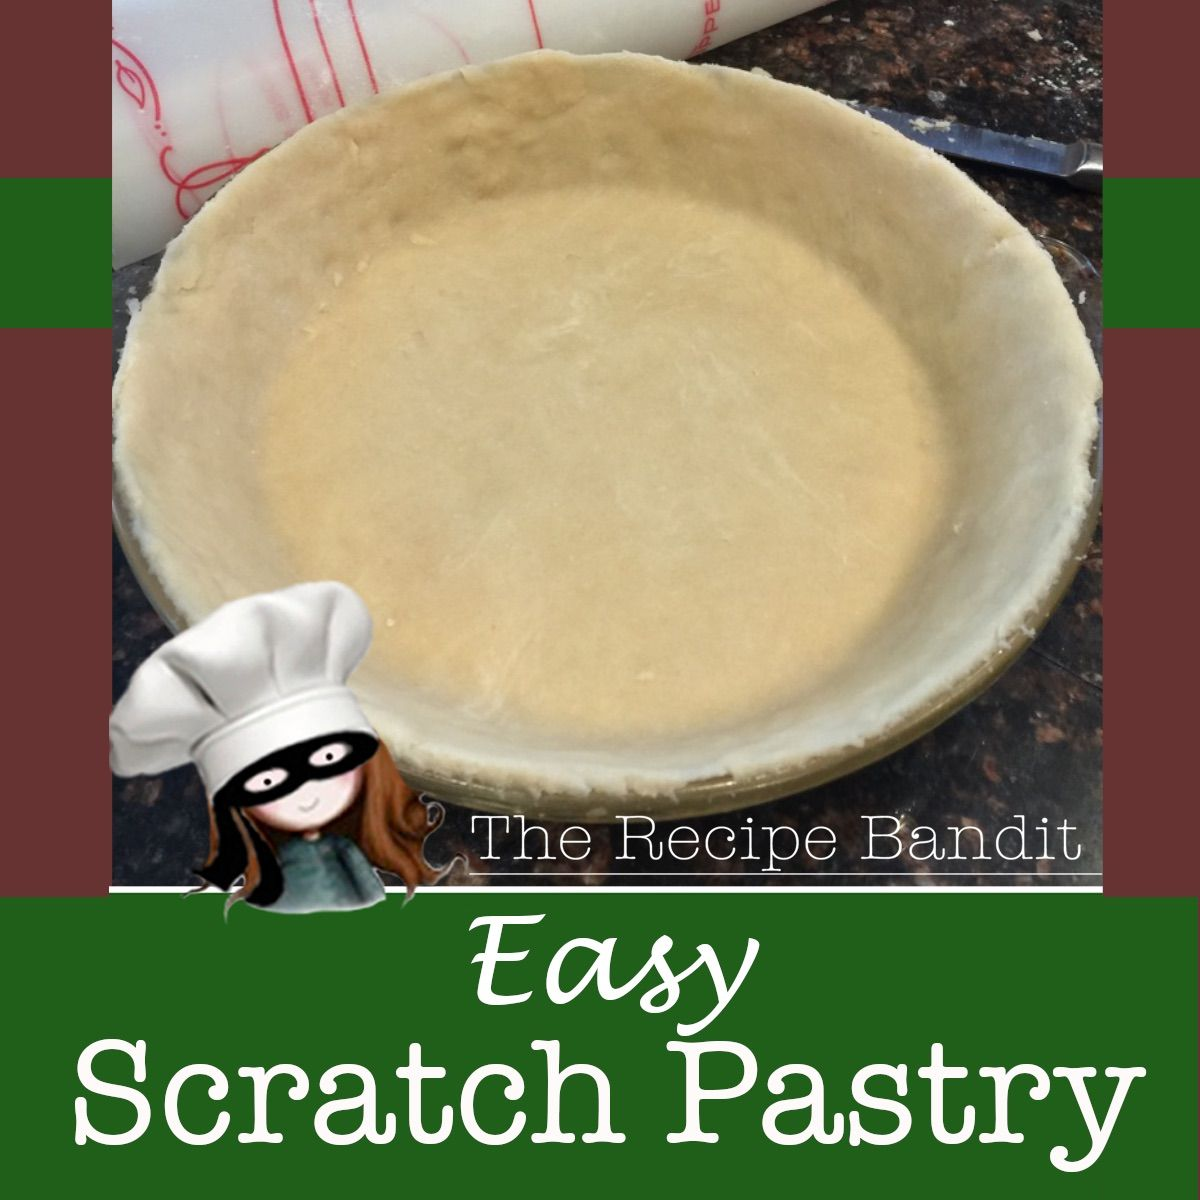 You don't have to be a pastry chef to create delicious and easy pastry in your own kitchen. This tried and true recipe will walk you through step by step. ❤️ #pastry #homemade #scratch #baking #Imadeit #therecipebandit